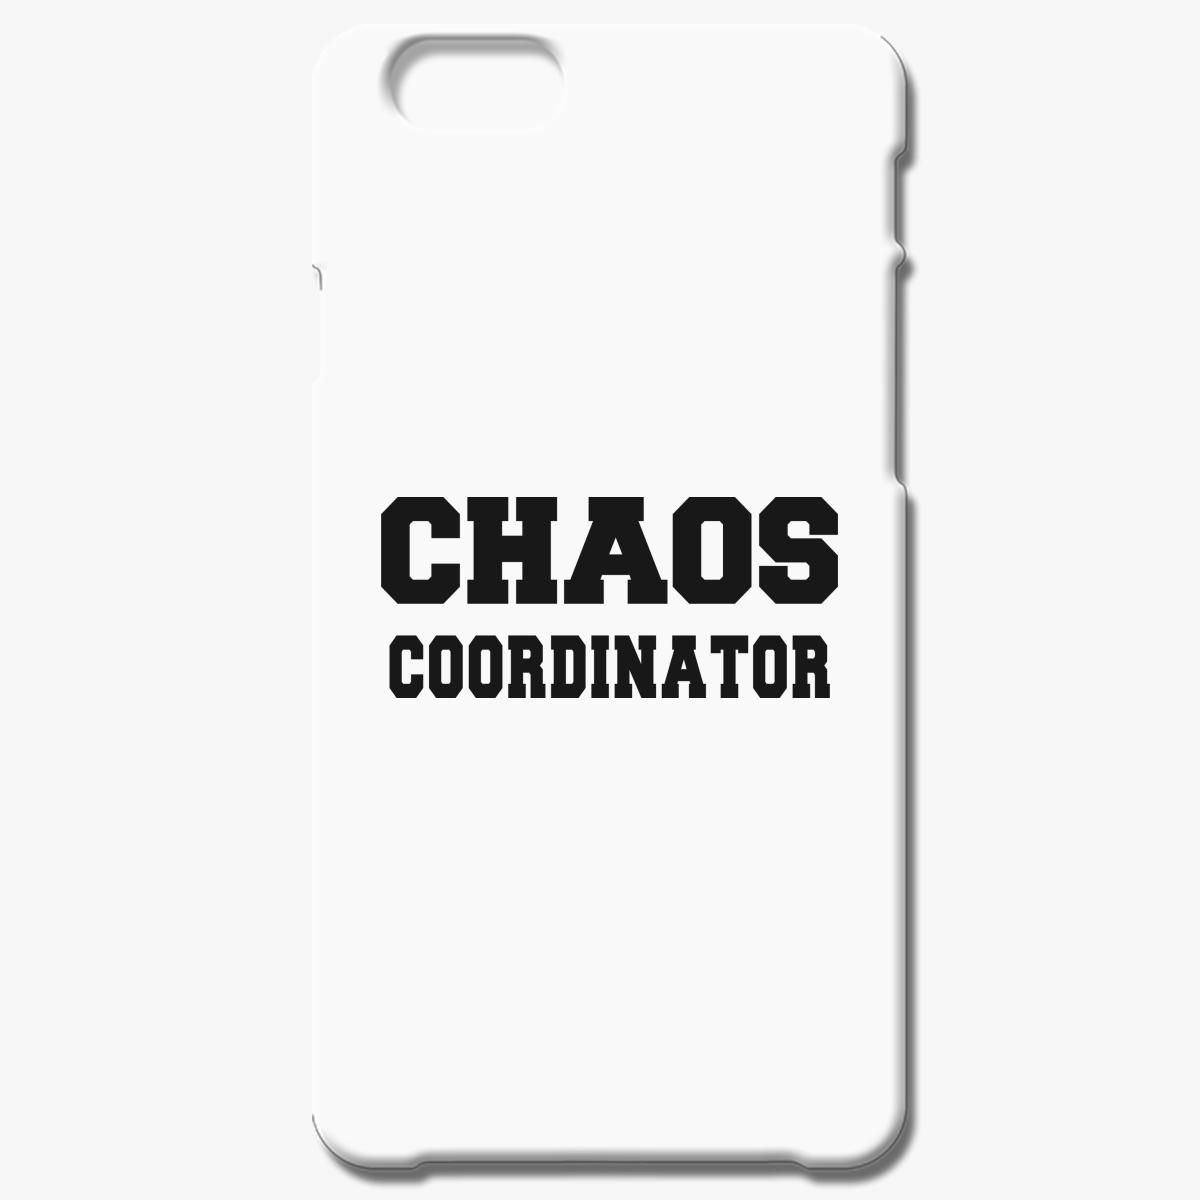 Chaos Coordinator Black Iphone 8 Plus Case